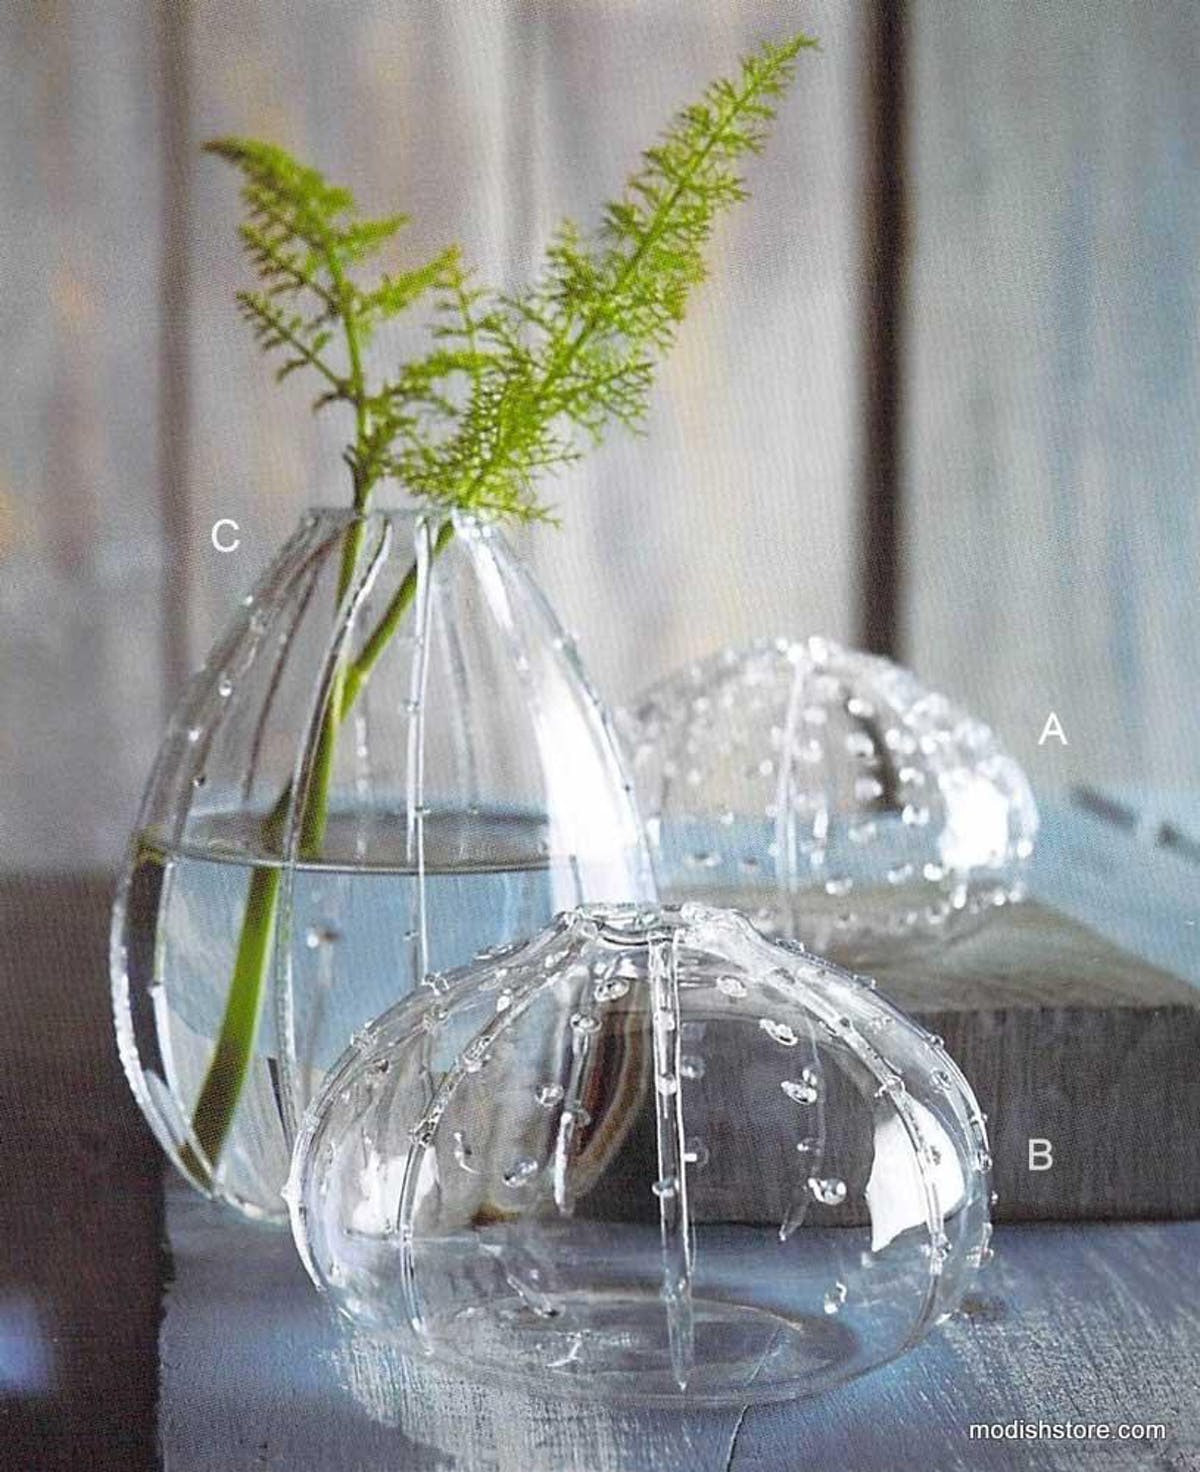 glass sea urchin vase of roost hand blown glass sea urchin vases set of 6 modish store inside roost sea urchin vases mixed set 3